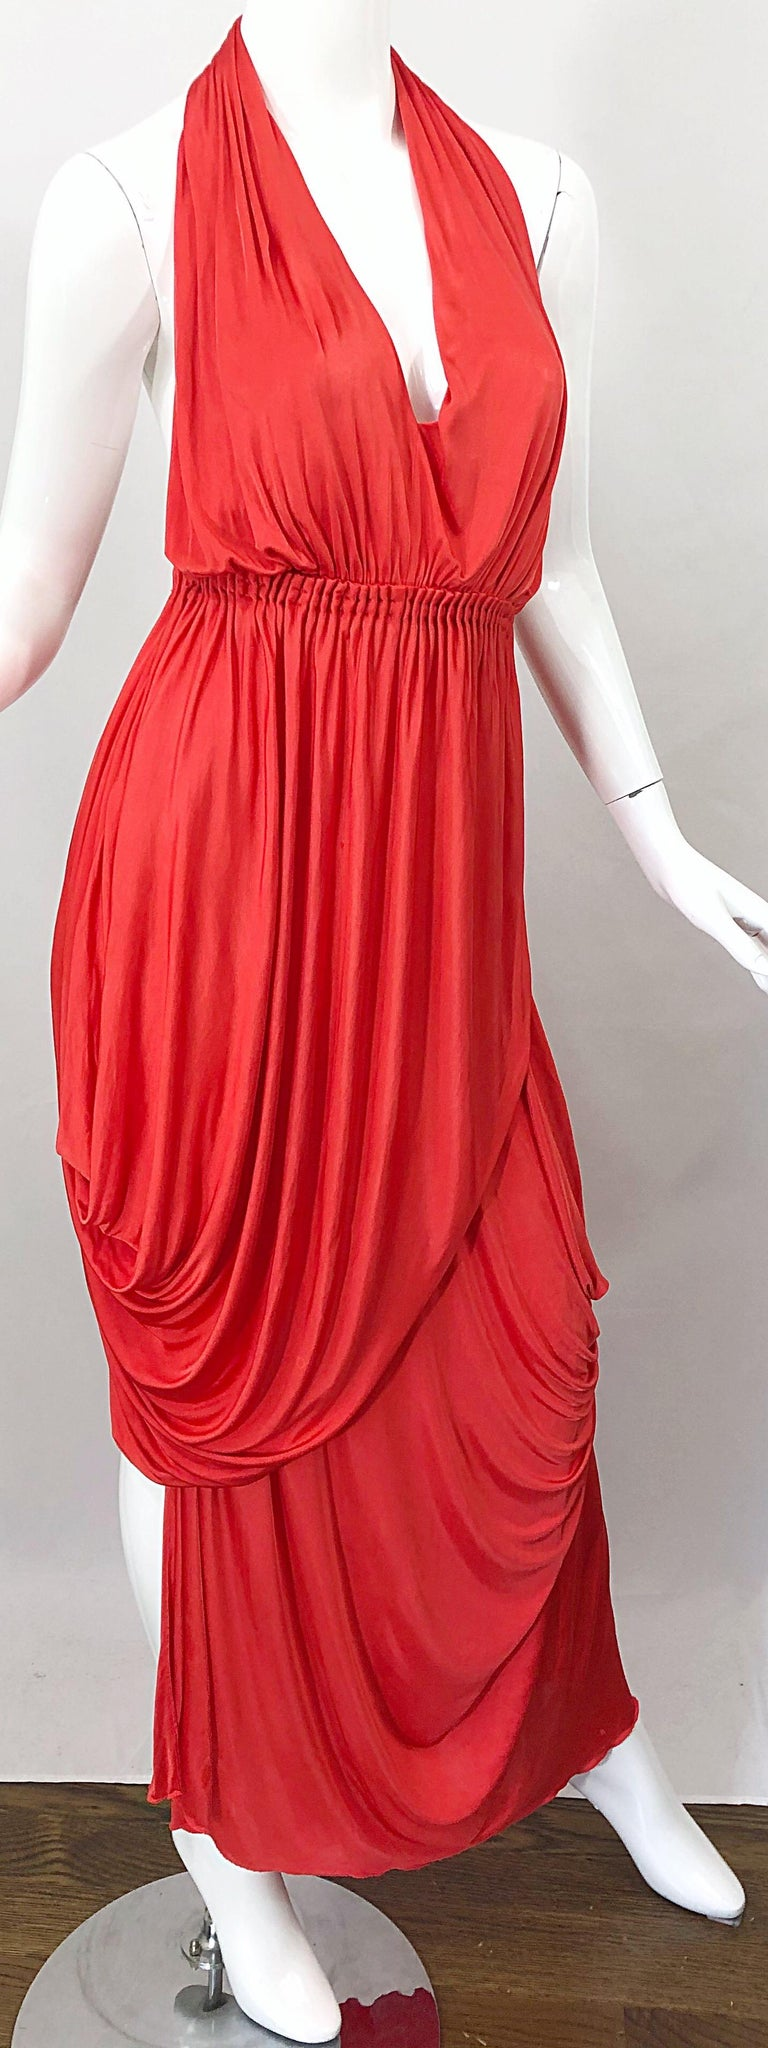 Vintage Halston Coral Silk Jersey Plunging Asymmetrical Hem Backless Gown Dress For Sale 7